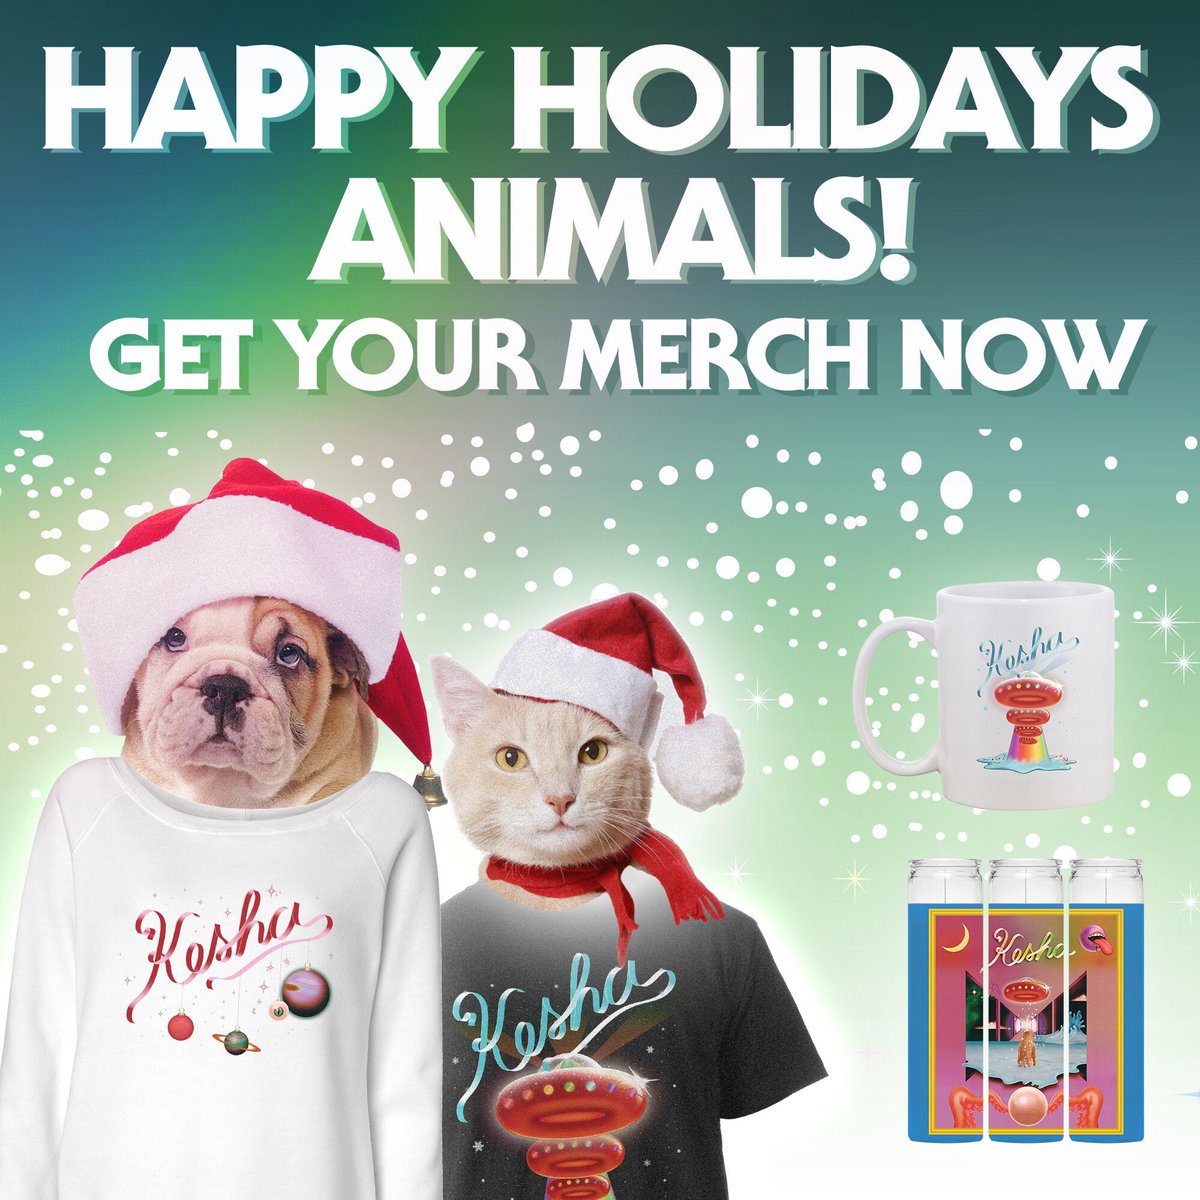 Happy (almost) holidays, animals!! I have some special limited edition holiday merch for you that you can get at https://t.co/GKGCFK5T0s  👽👻🌈💜⚡️ *This Friday is the last day to order to guarantee delivery before Christmas 🎄🎁💕